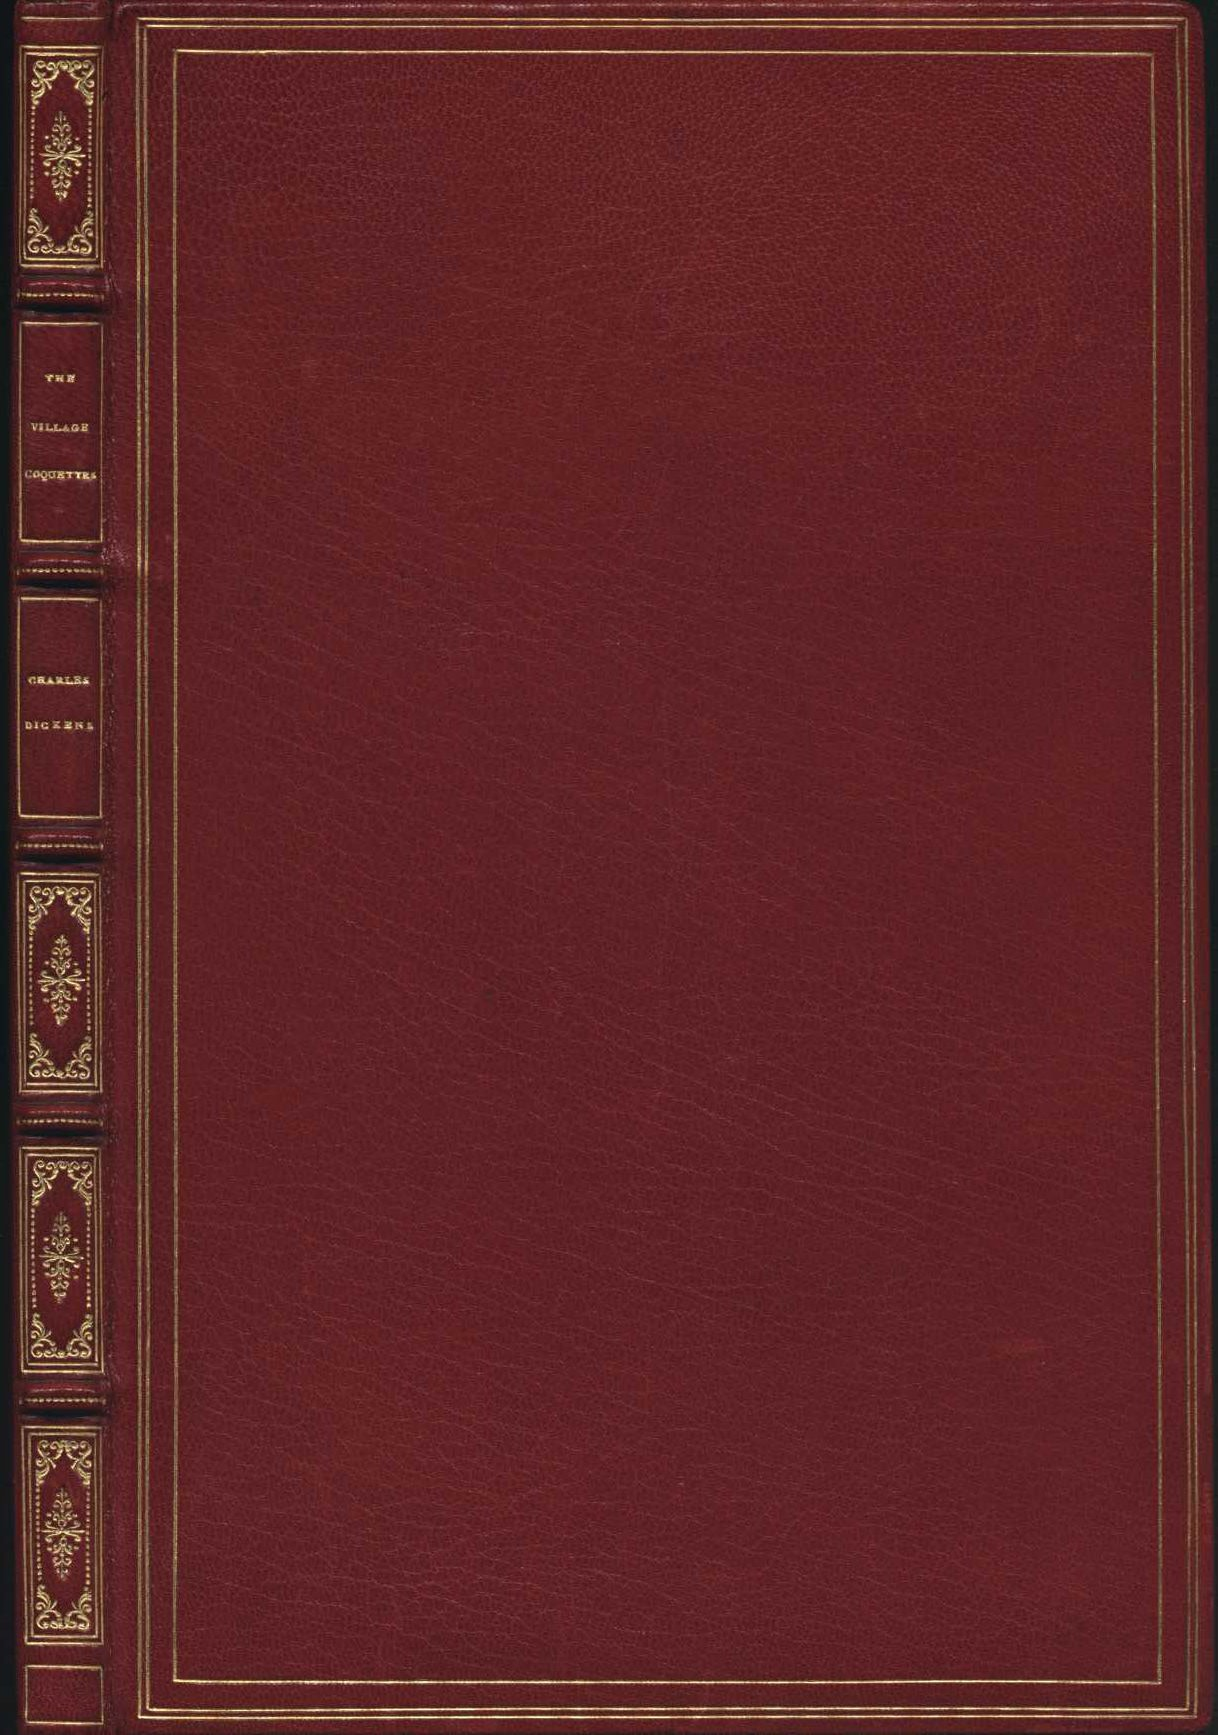 John Hullah (music); Charles Dickens (libretto). The village coquettes: a comic opera in two acts. London: Richard Bentley, 1836.